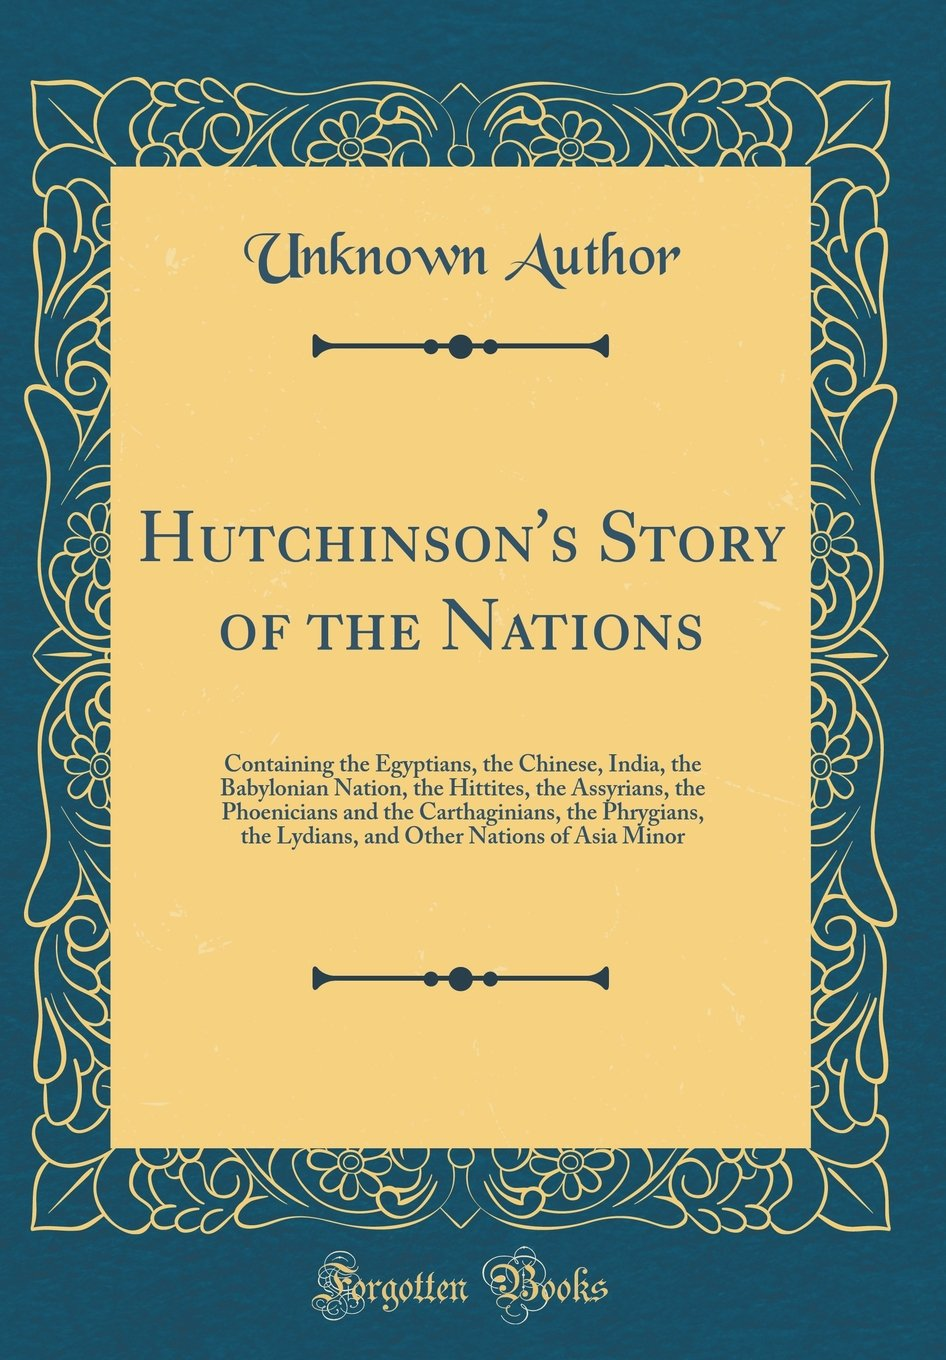 Hutchinson's Story of the Nations: Containing the Egyptians, the Chinese, India, the Babylonian Nation, the Hittites, the Assyrians, the Phoenicians ... Other Nations of Asia Minor (Classic Reprint) PDF